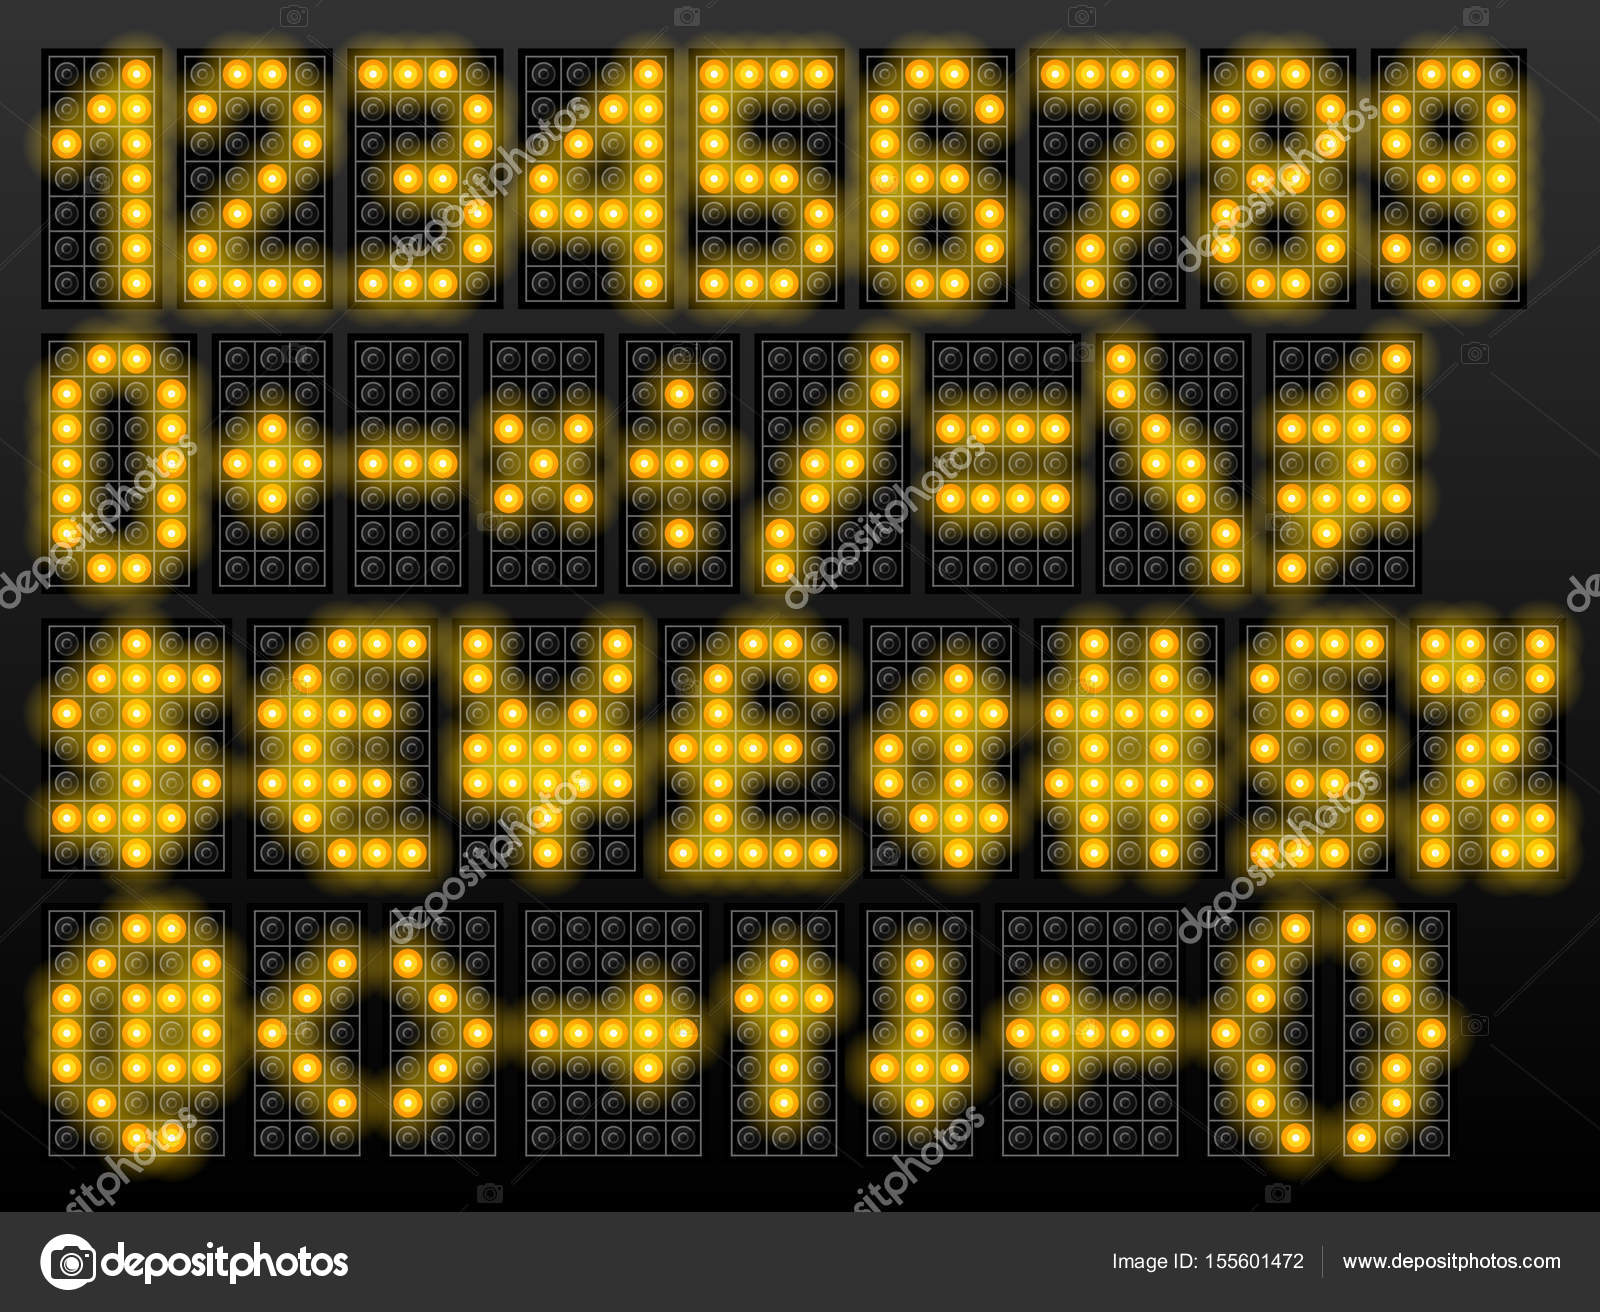 Led digital font based on dot matrix technology stock vector led digital font based on dot matrix technology stock vector buycottarizona Image collections